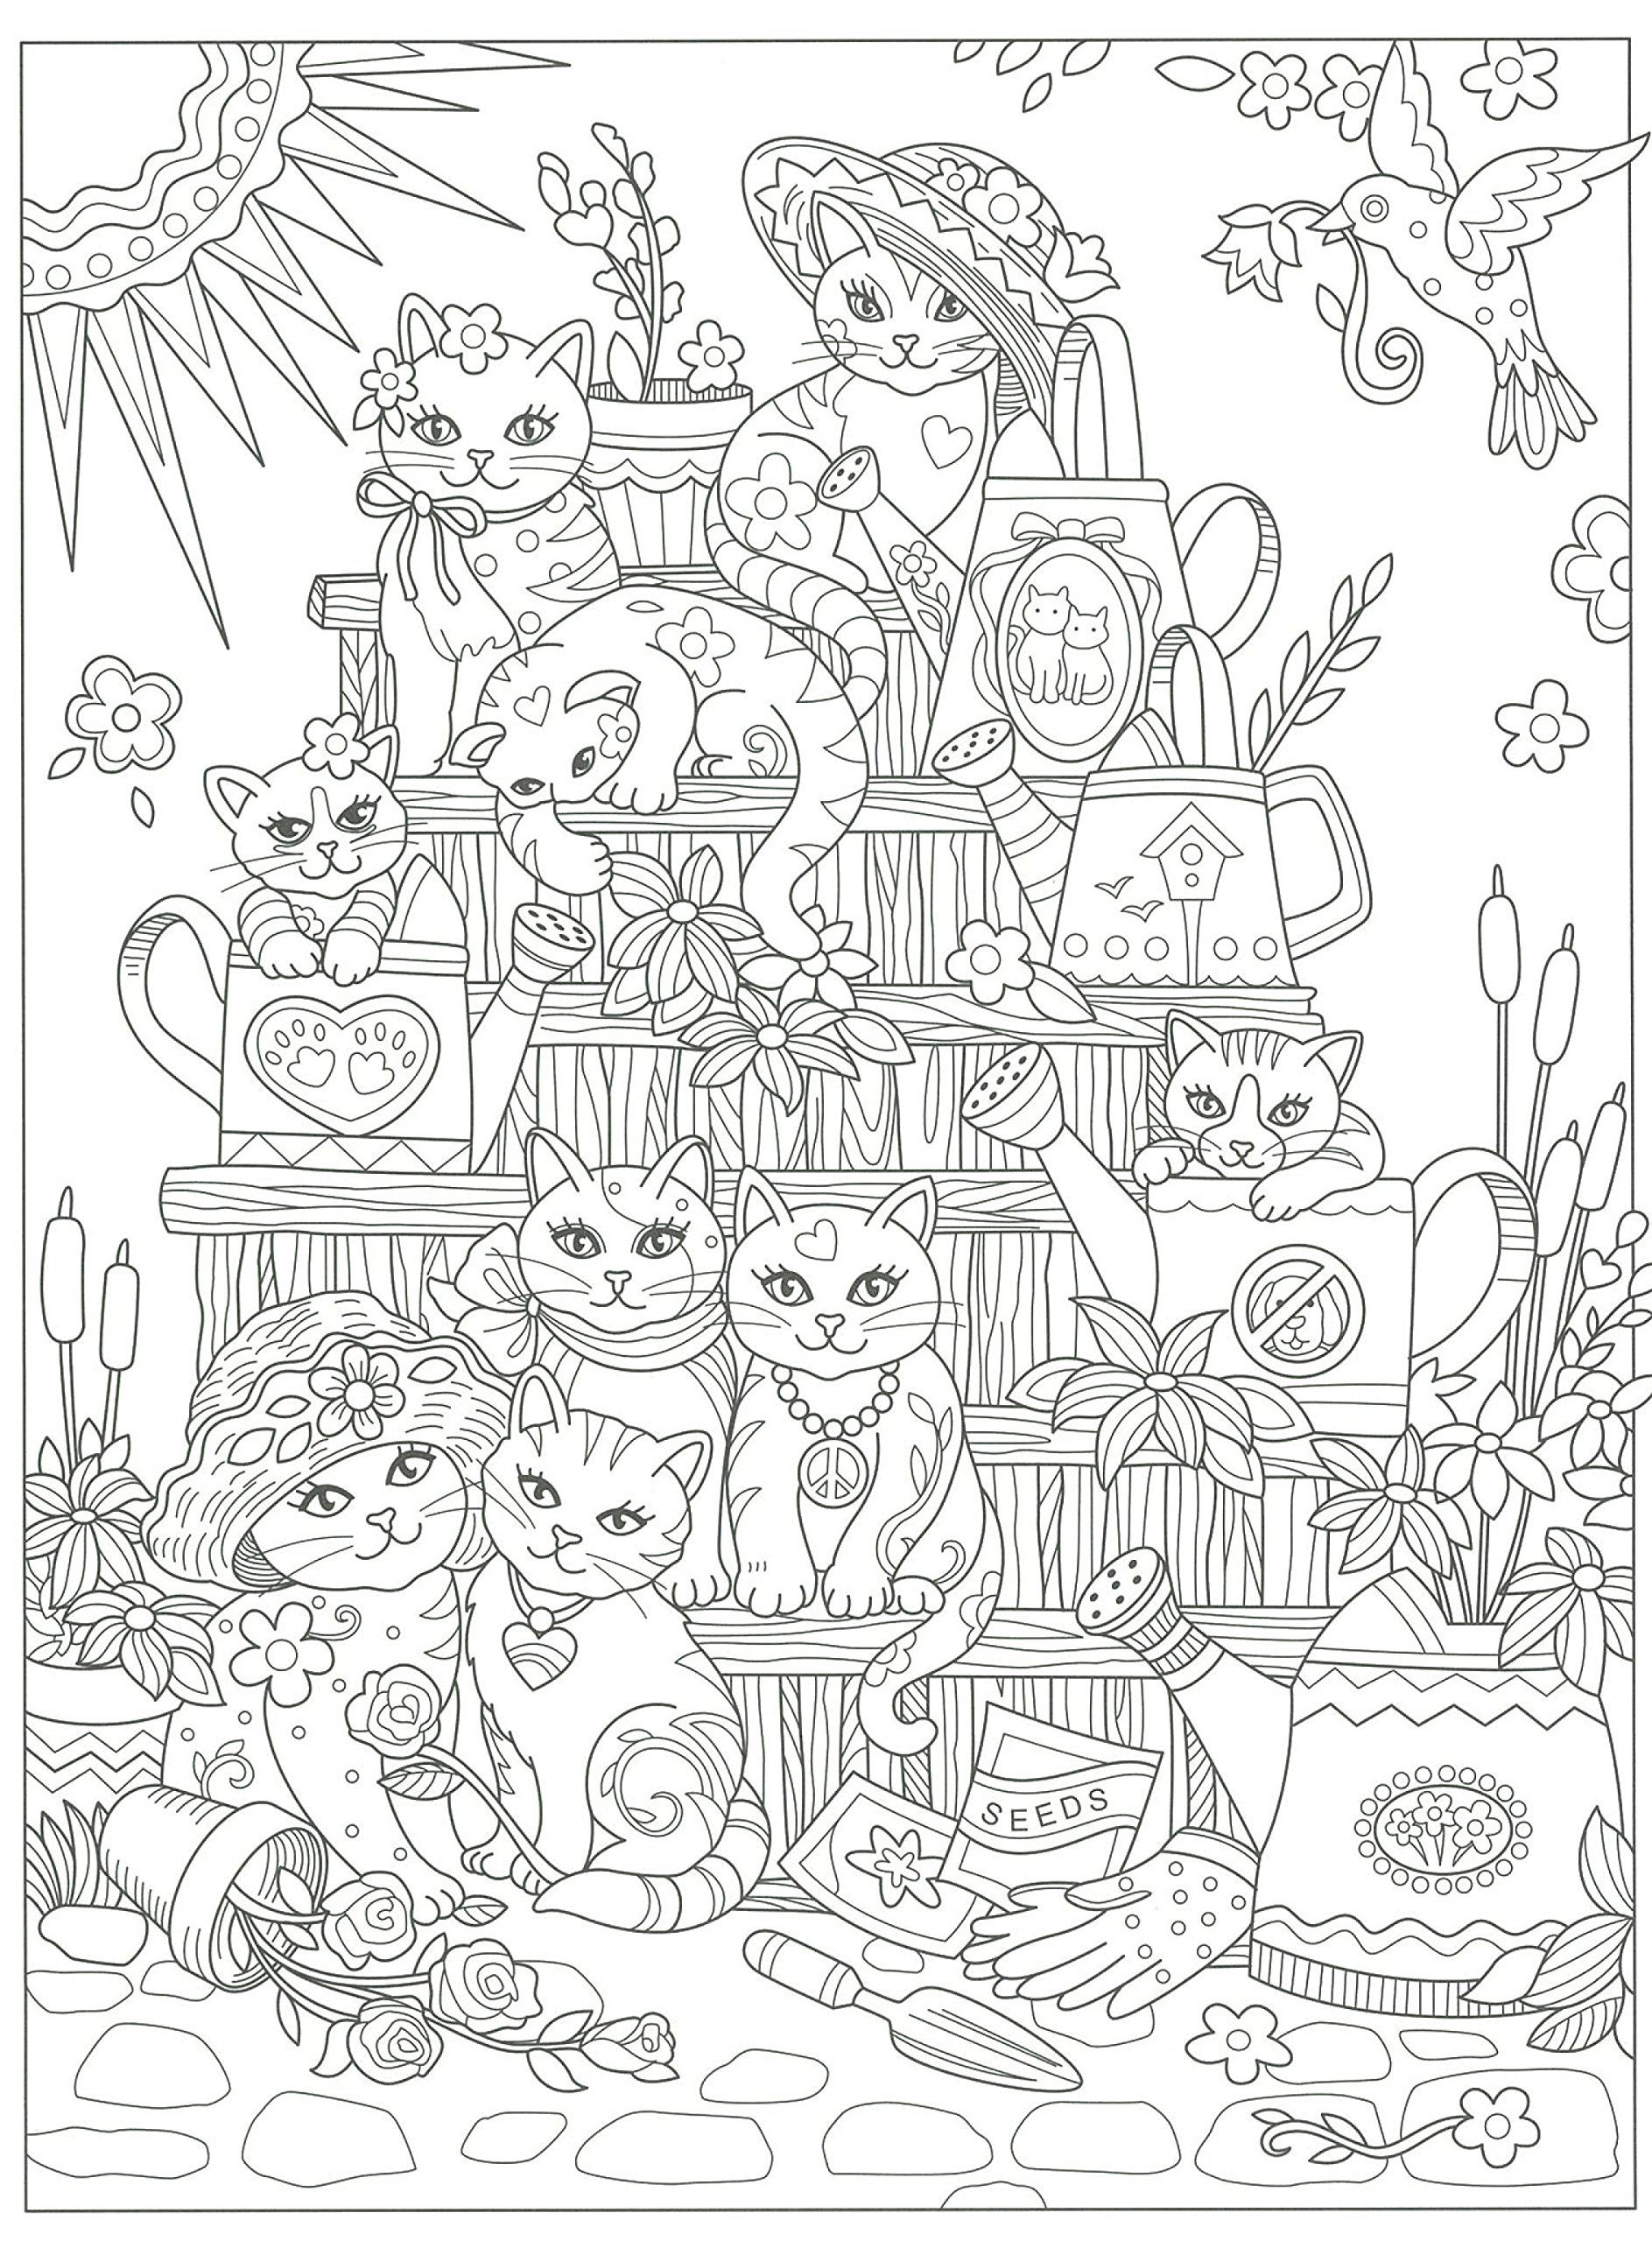 Cats galore coloring page Coloring